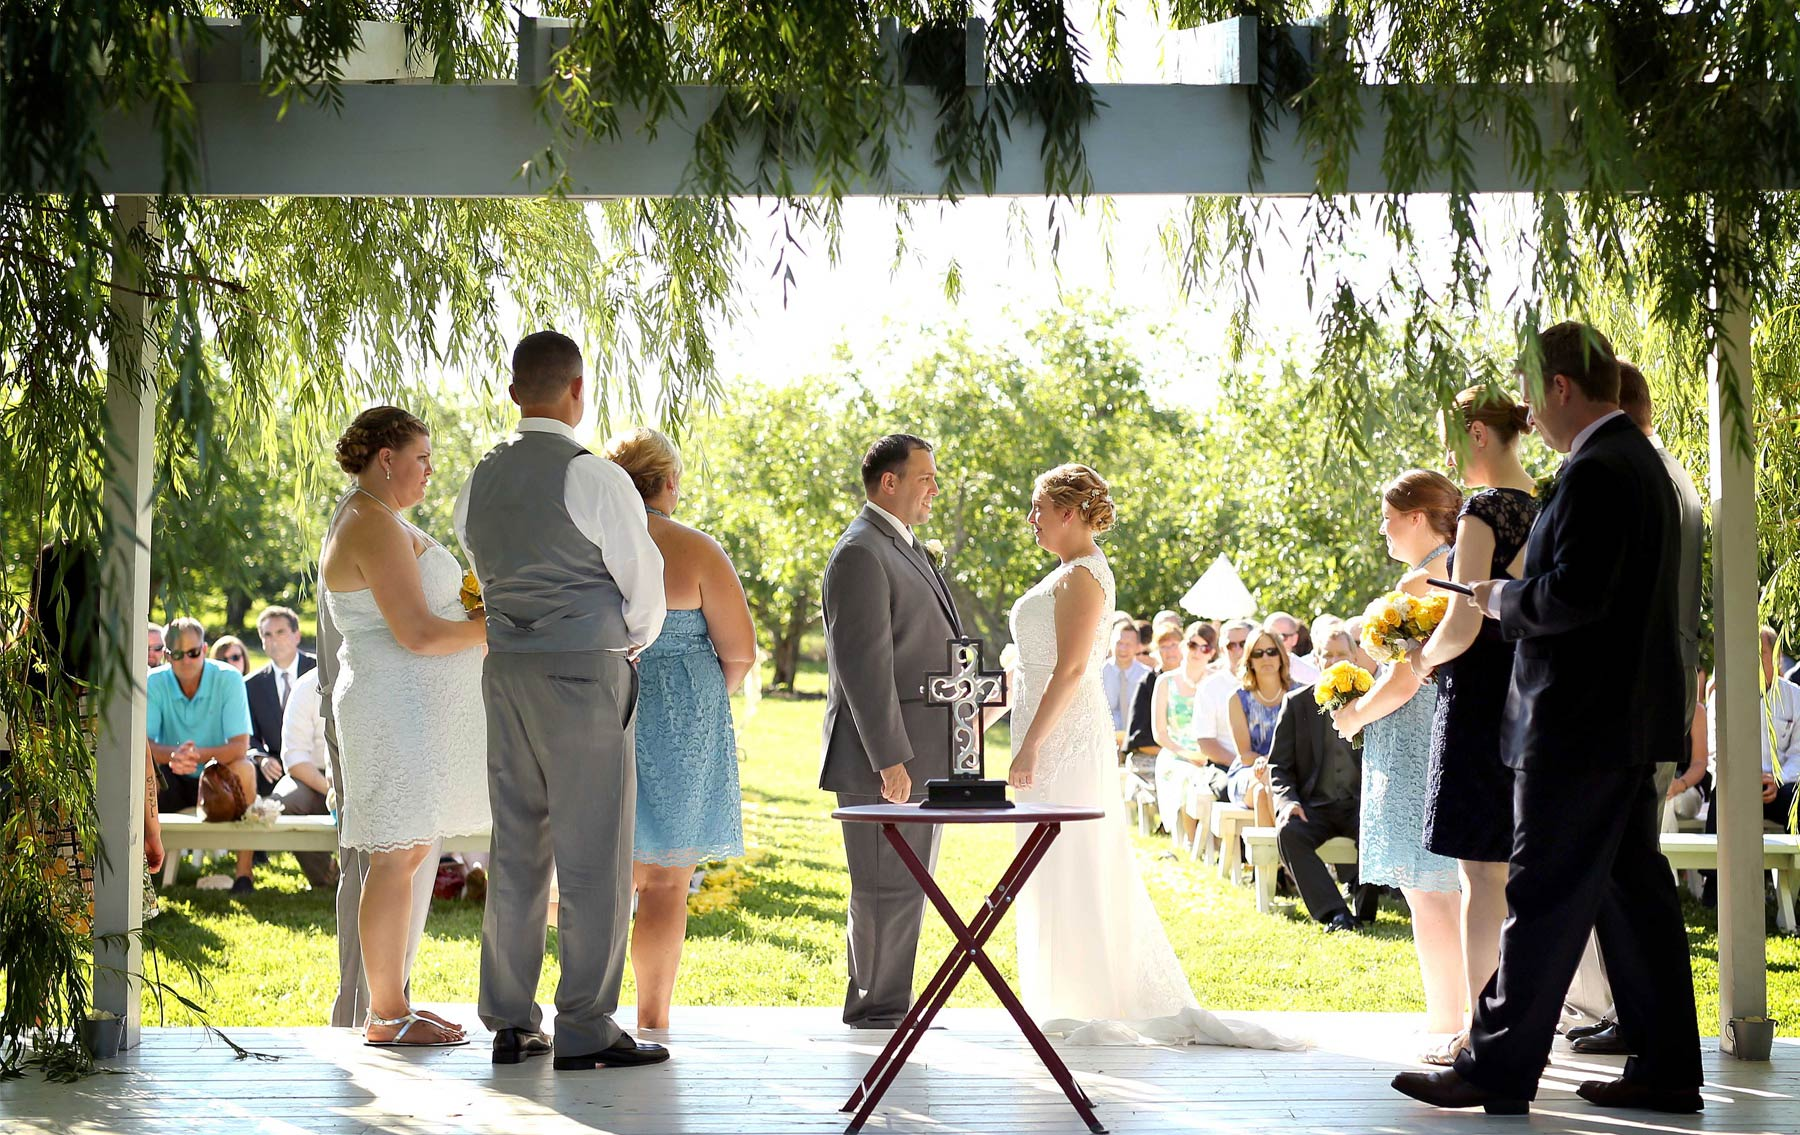 12-Minneapolis-Minnesota-Wedding-Photography-by-Vick-Photography-Minnesota-Harvest-Apple-Orchard-Ceremony-Emilie-&-Giovanni.jpg